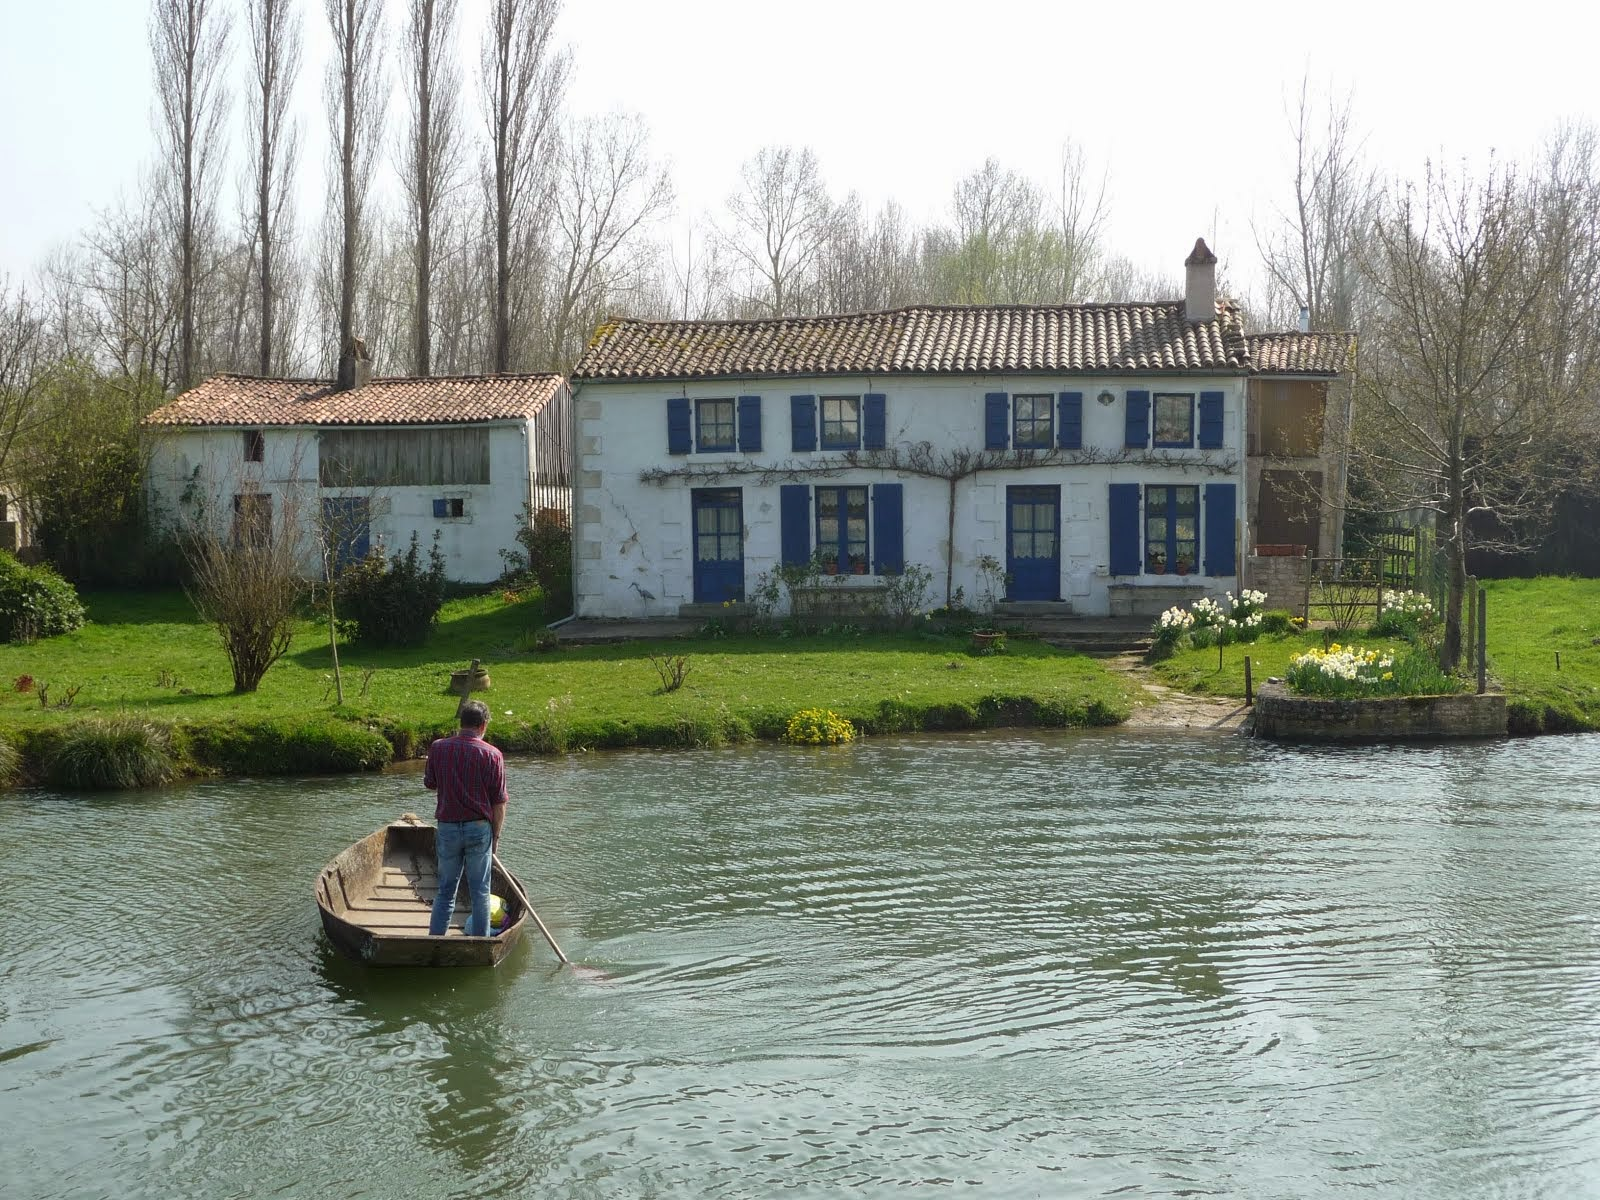 Coming home with the groceries, the Marais Poitevin